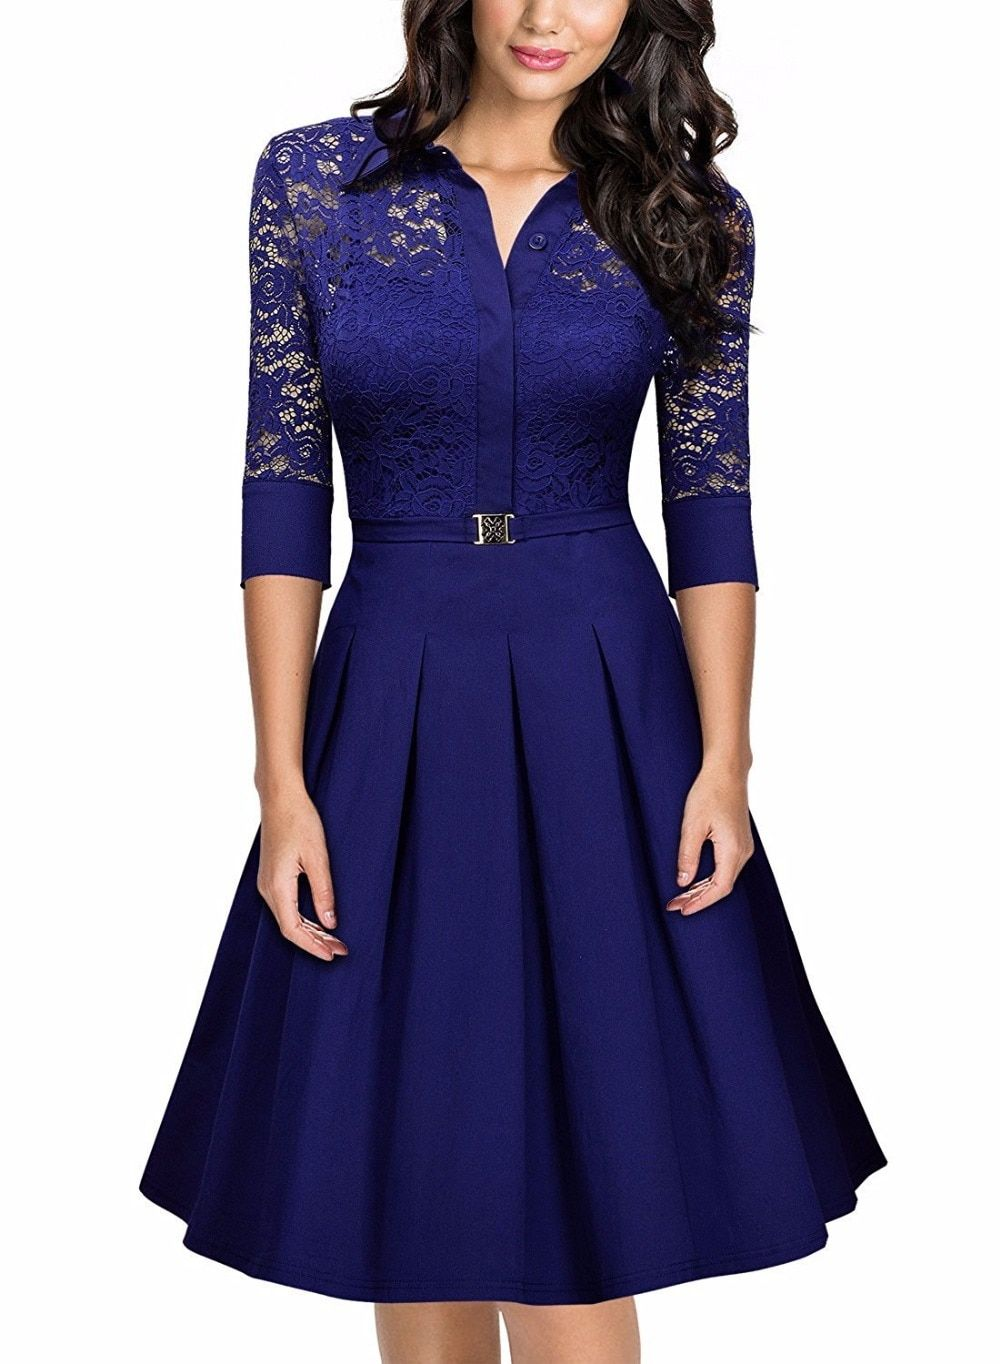 2018 European Fashion Women Lace Party Dress Elegant Dress Suit V-neck Casual Half Sleeve Work Dress Ladies Pleated Party Dreses